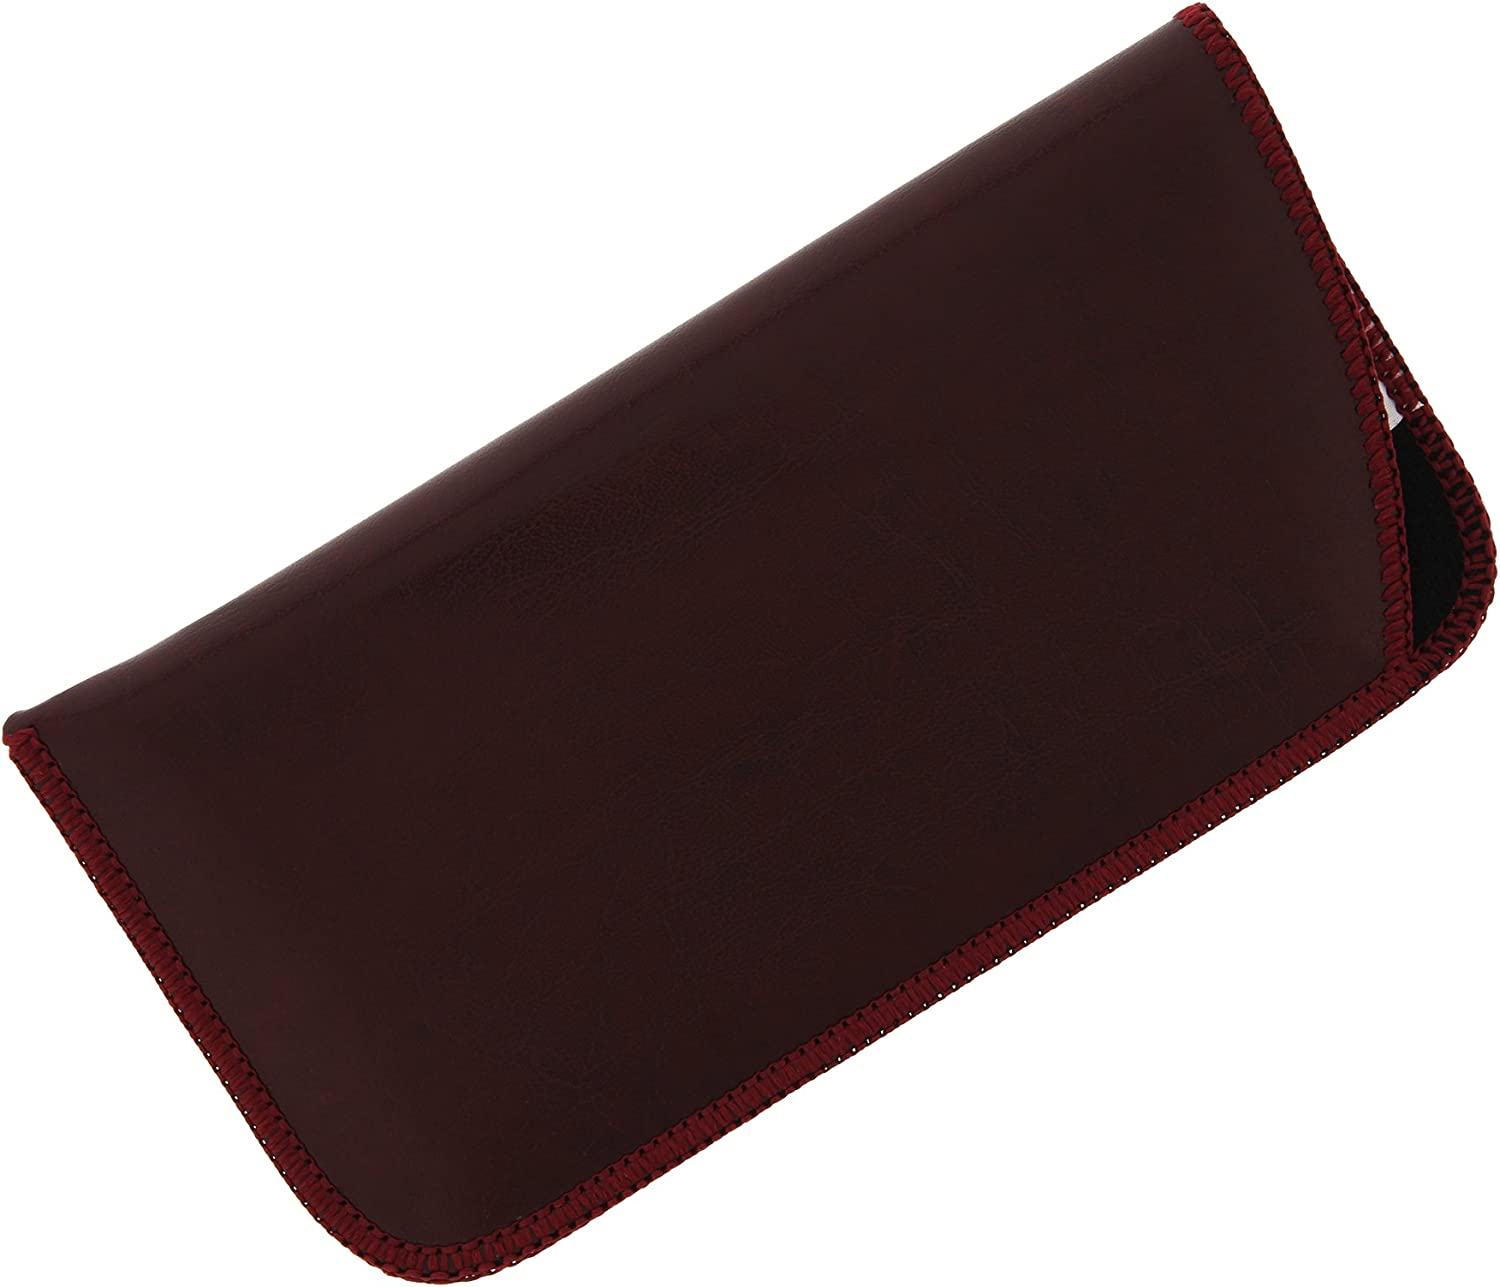 Faux Leather Eyeglass Slip Case In Navy, Gray, Black, Burgundy, And Hunter Green